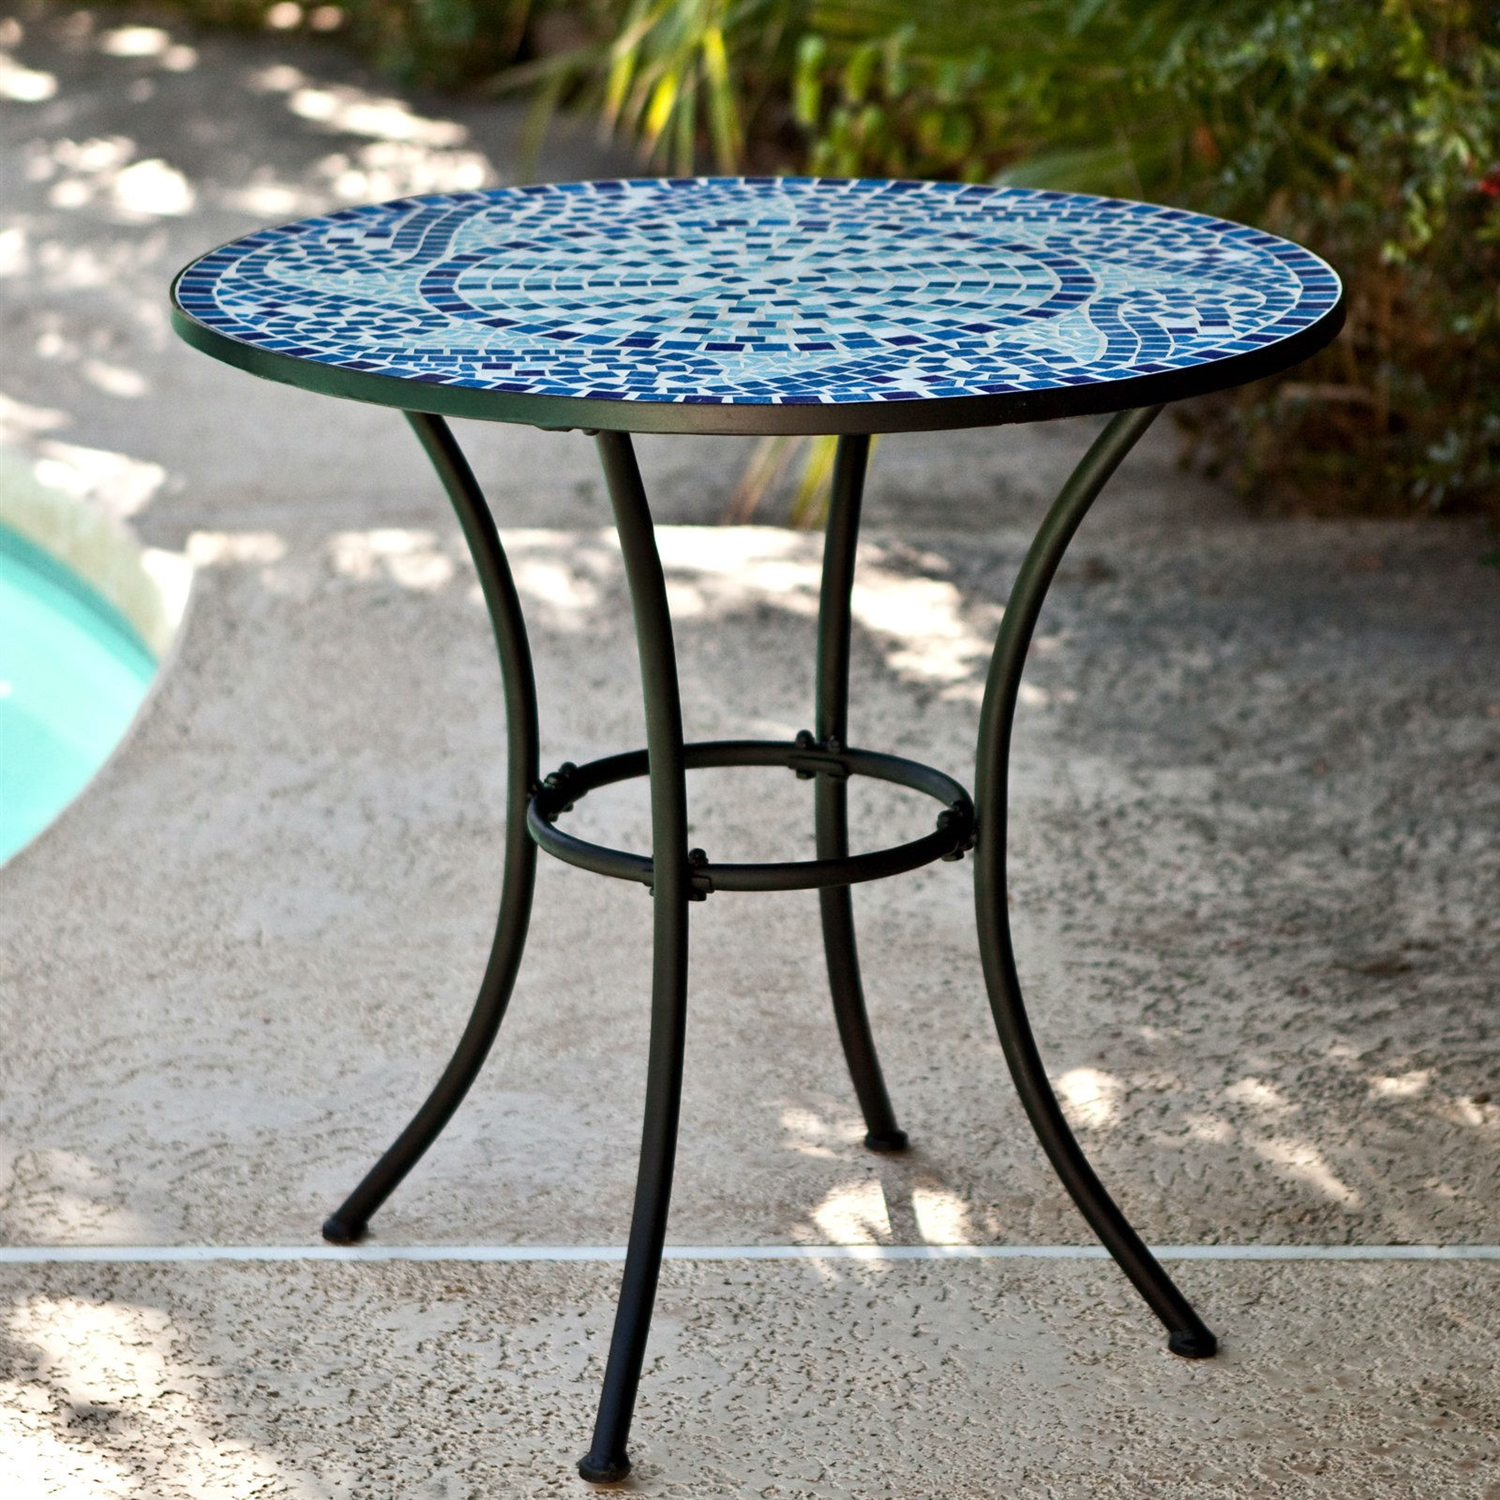 30 Inch Round Metal Outdoor Bistro Patio Table With Hand Laid Blue Tiles